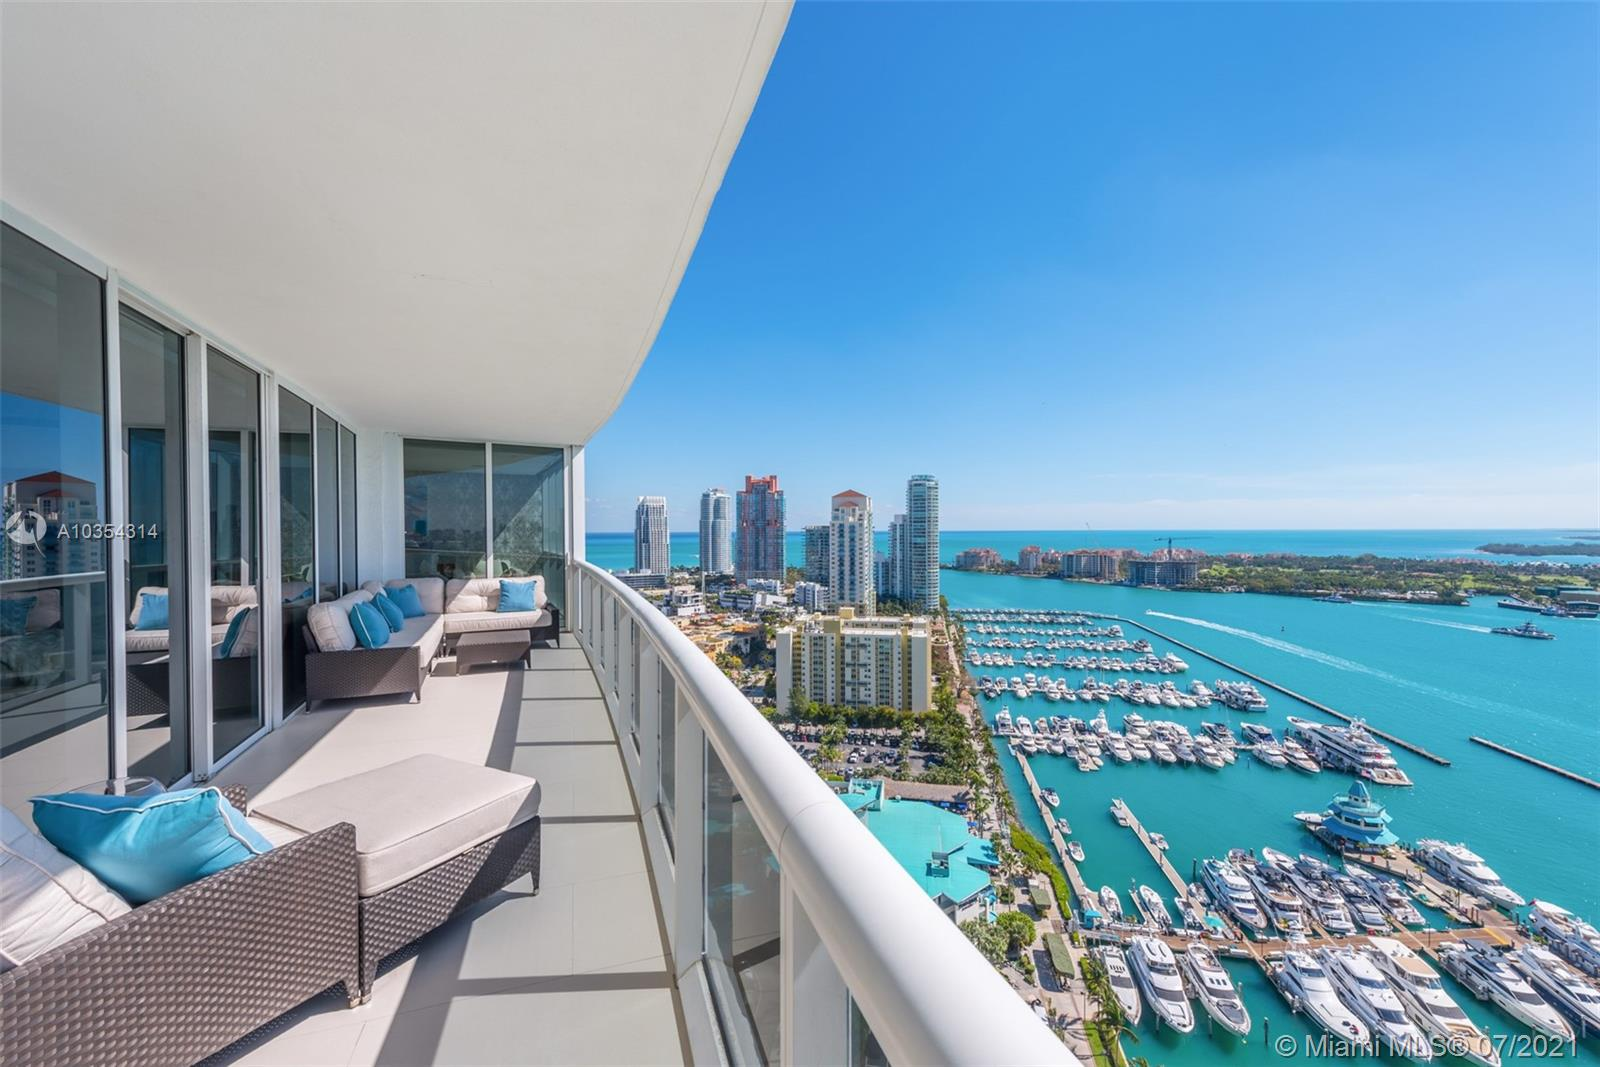 Enjoy ultimate luxury living in this stunning contemporary unit at the exclusive Murano Grande in South Beach. A private elevator foyer opens to a beautiful flow-through floorplan offering breathtaking views from floor to ceiling windows of the ocean, Fisher Island, Downtown Miami and Biscayne Bay. This spectacular unit offers luxurious custom finishes throughout, 3 bedrooms, 3 full bathrooms and 1 half bathroom, Legrand lighting system, automatic curtains, 2 expansive balconies, walk-in closets, a wet bar with hidden built-in storage &white tile flooring throughout. The kitchen features a Sub Zero fridge, wine cooler & Miele appliances. With balcony access and stunning views from every room the master bedroom offers a large master his/hers walk-in closets, tub and a large rainfall shower.